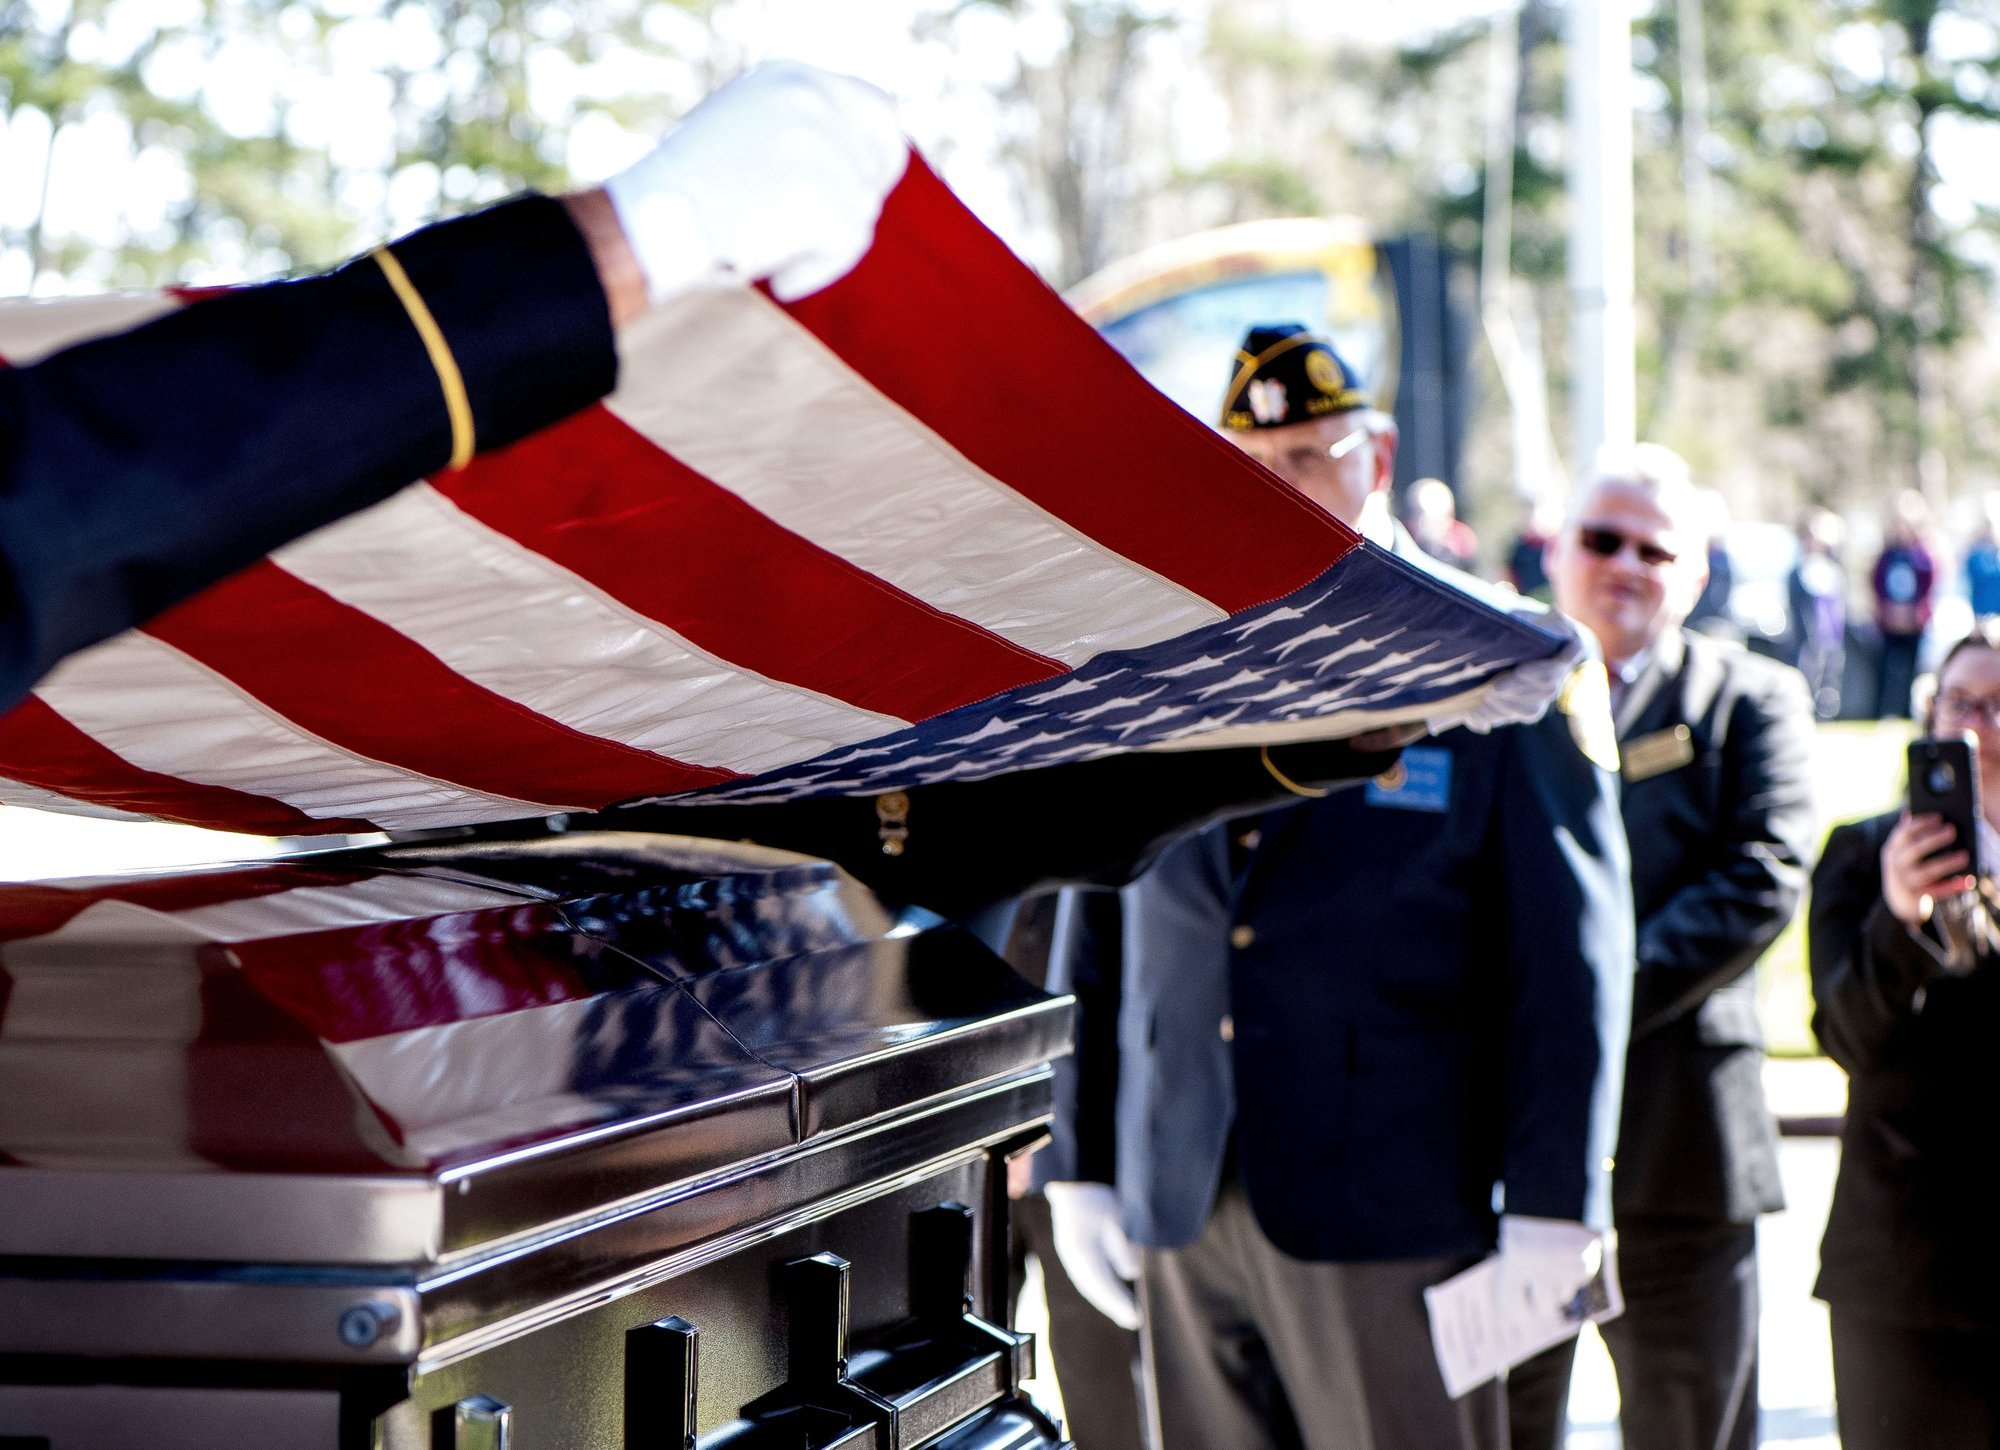 US Army medic Phillip Kenneth Drye, a veteran of the Vietnam War, was buried at the Salisbury National Cemetery on Wednesday morning with full military honors. Drye passed away on December 24 of 2018 but had no relatives to claim the body and pay for his